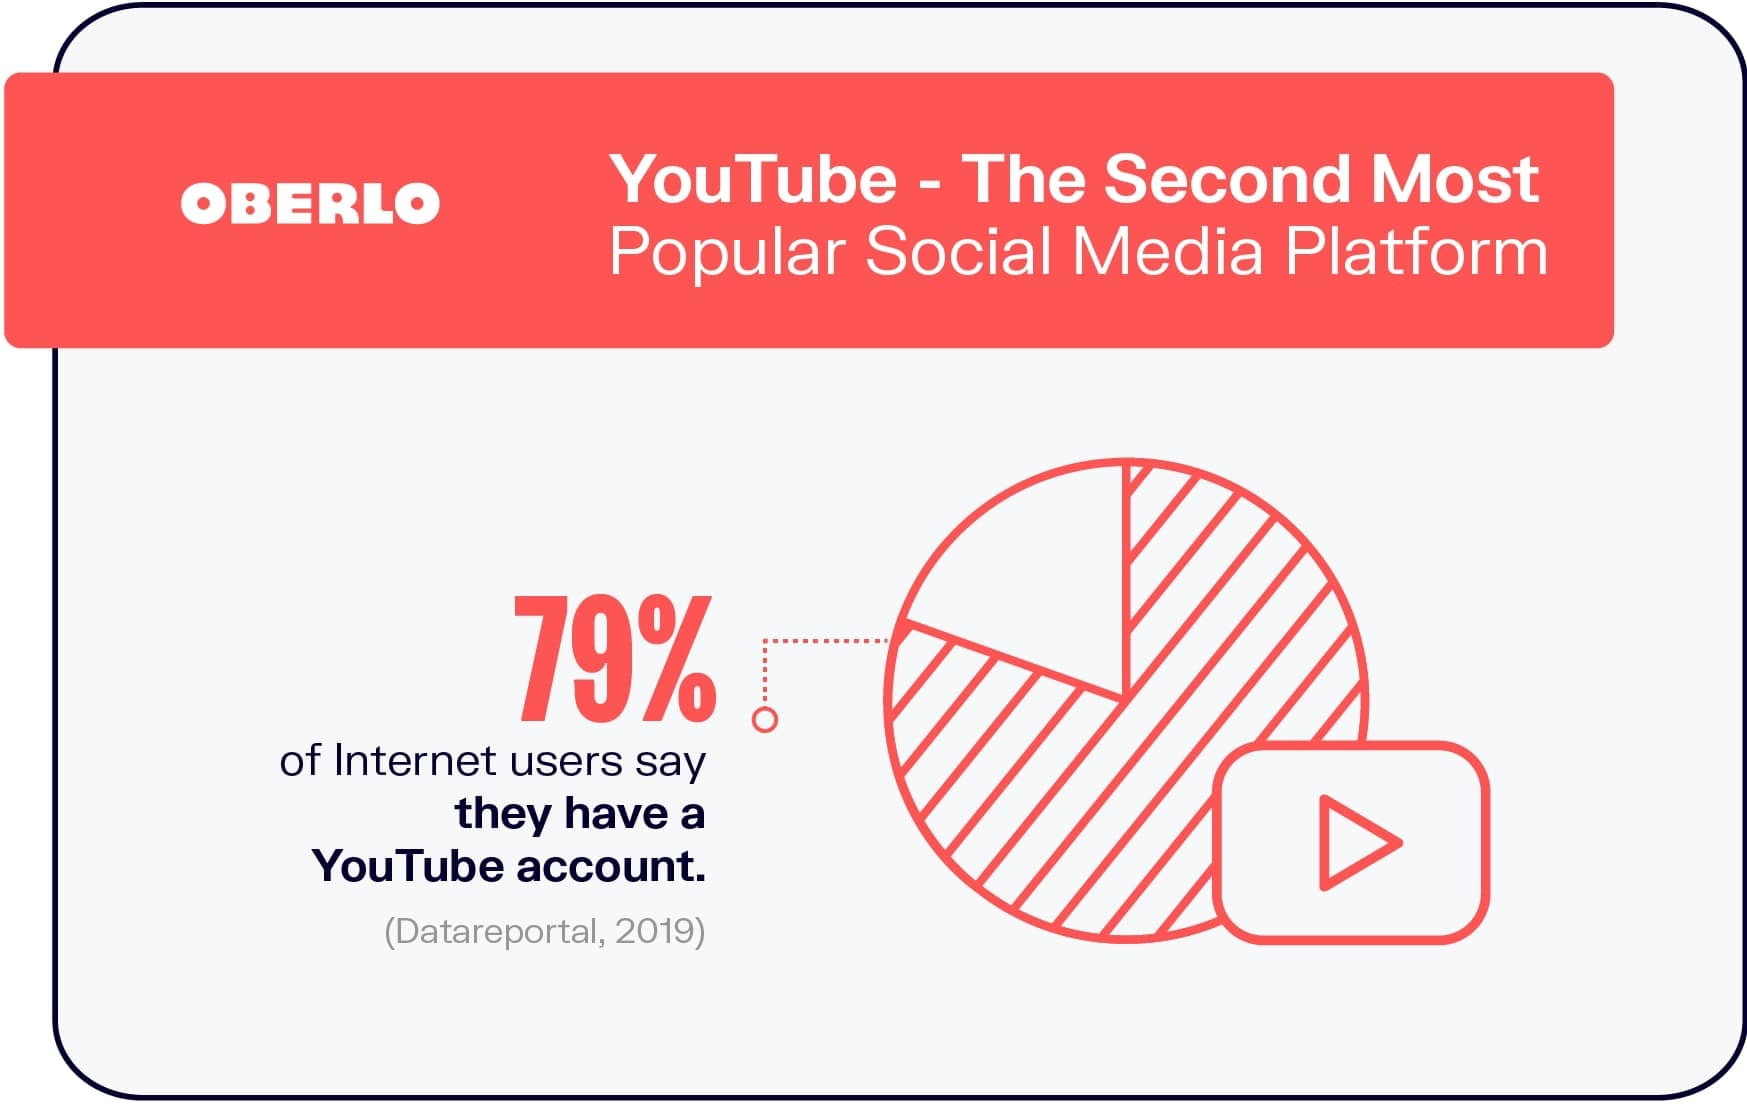 YouTube –The Second Most Popular Social Media Platform